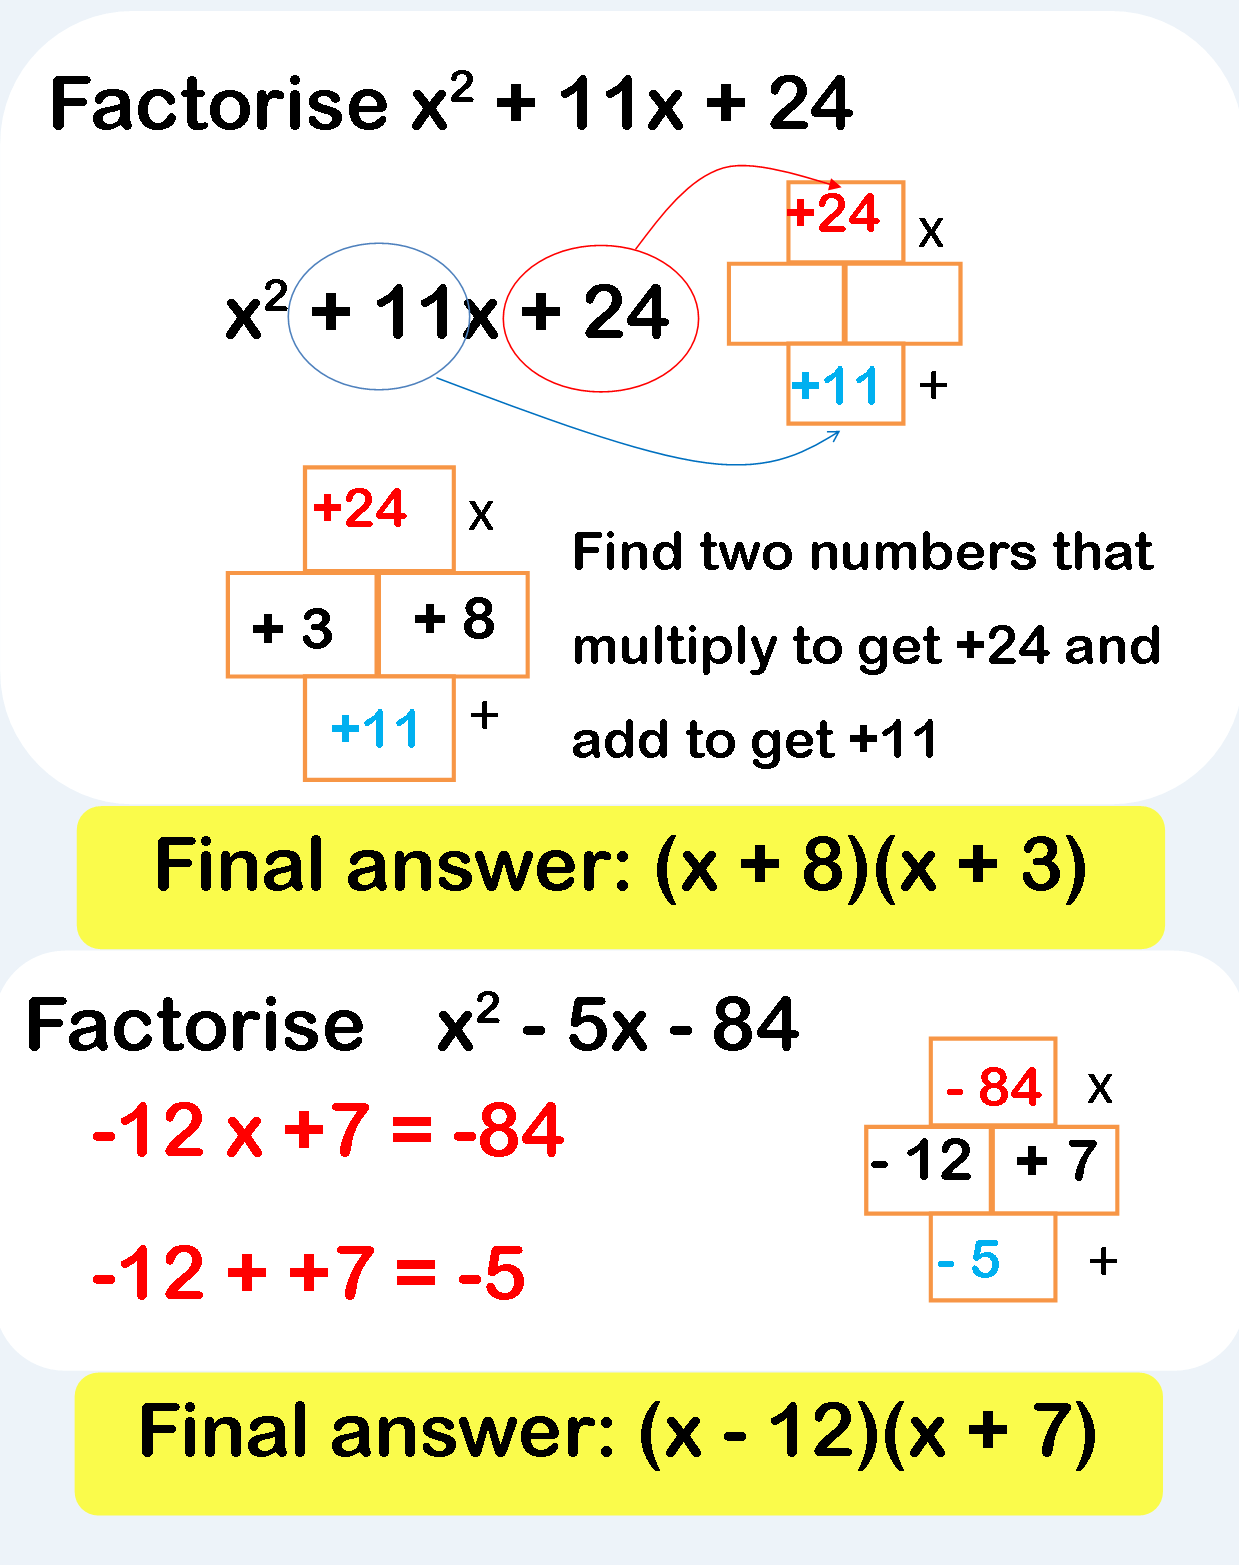 Factorisation Rs Aggarwal Class 8 Maths Solutions Ex 7a